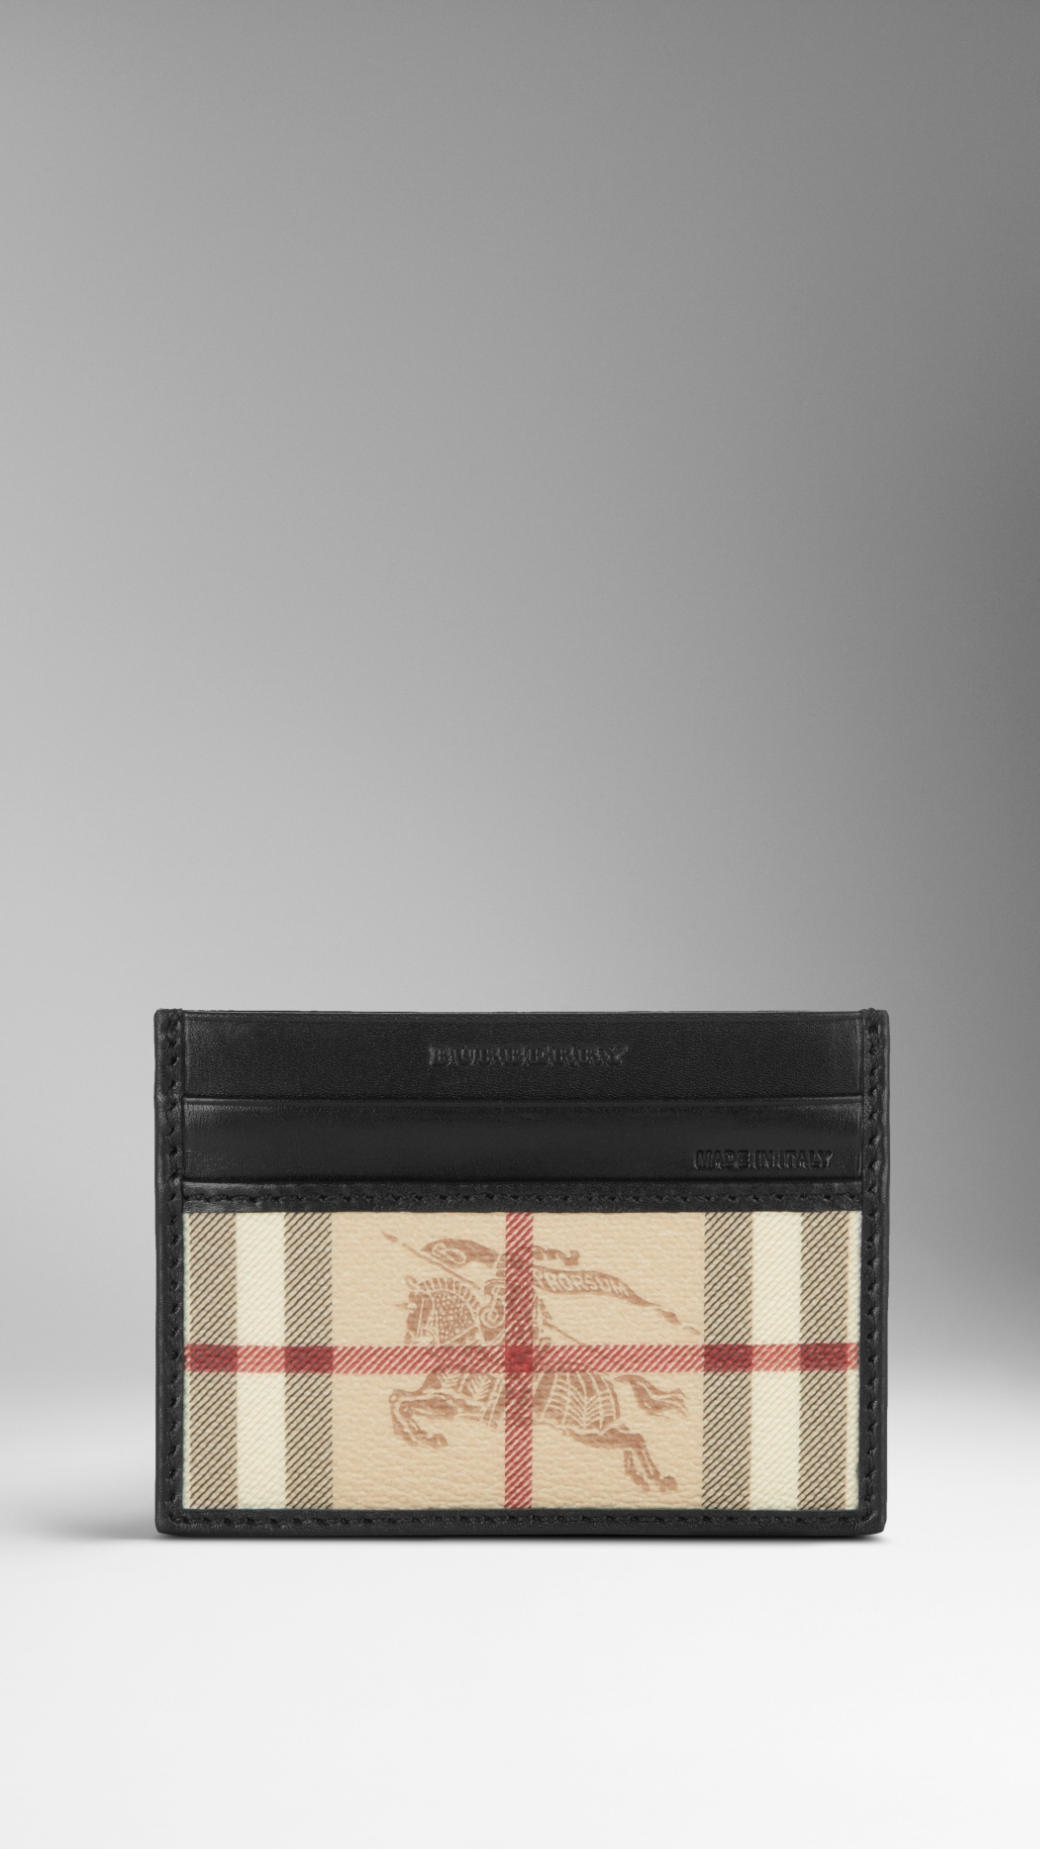 Discount Free Shipping Cheap Ebay Burberry Haymarket check cardholder Cheap Real Eastbay Outlet Fashionable Shop For Cheap Online jkdEnd